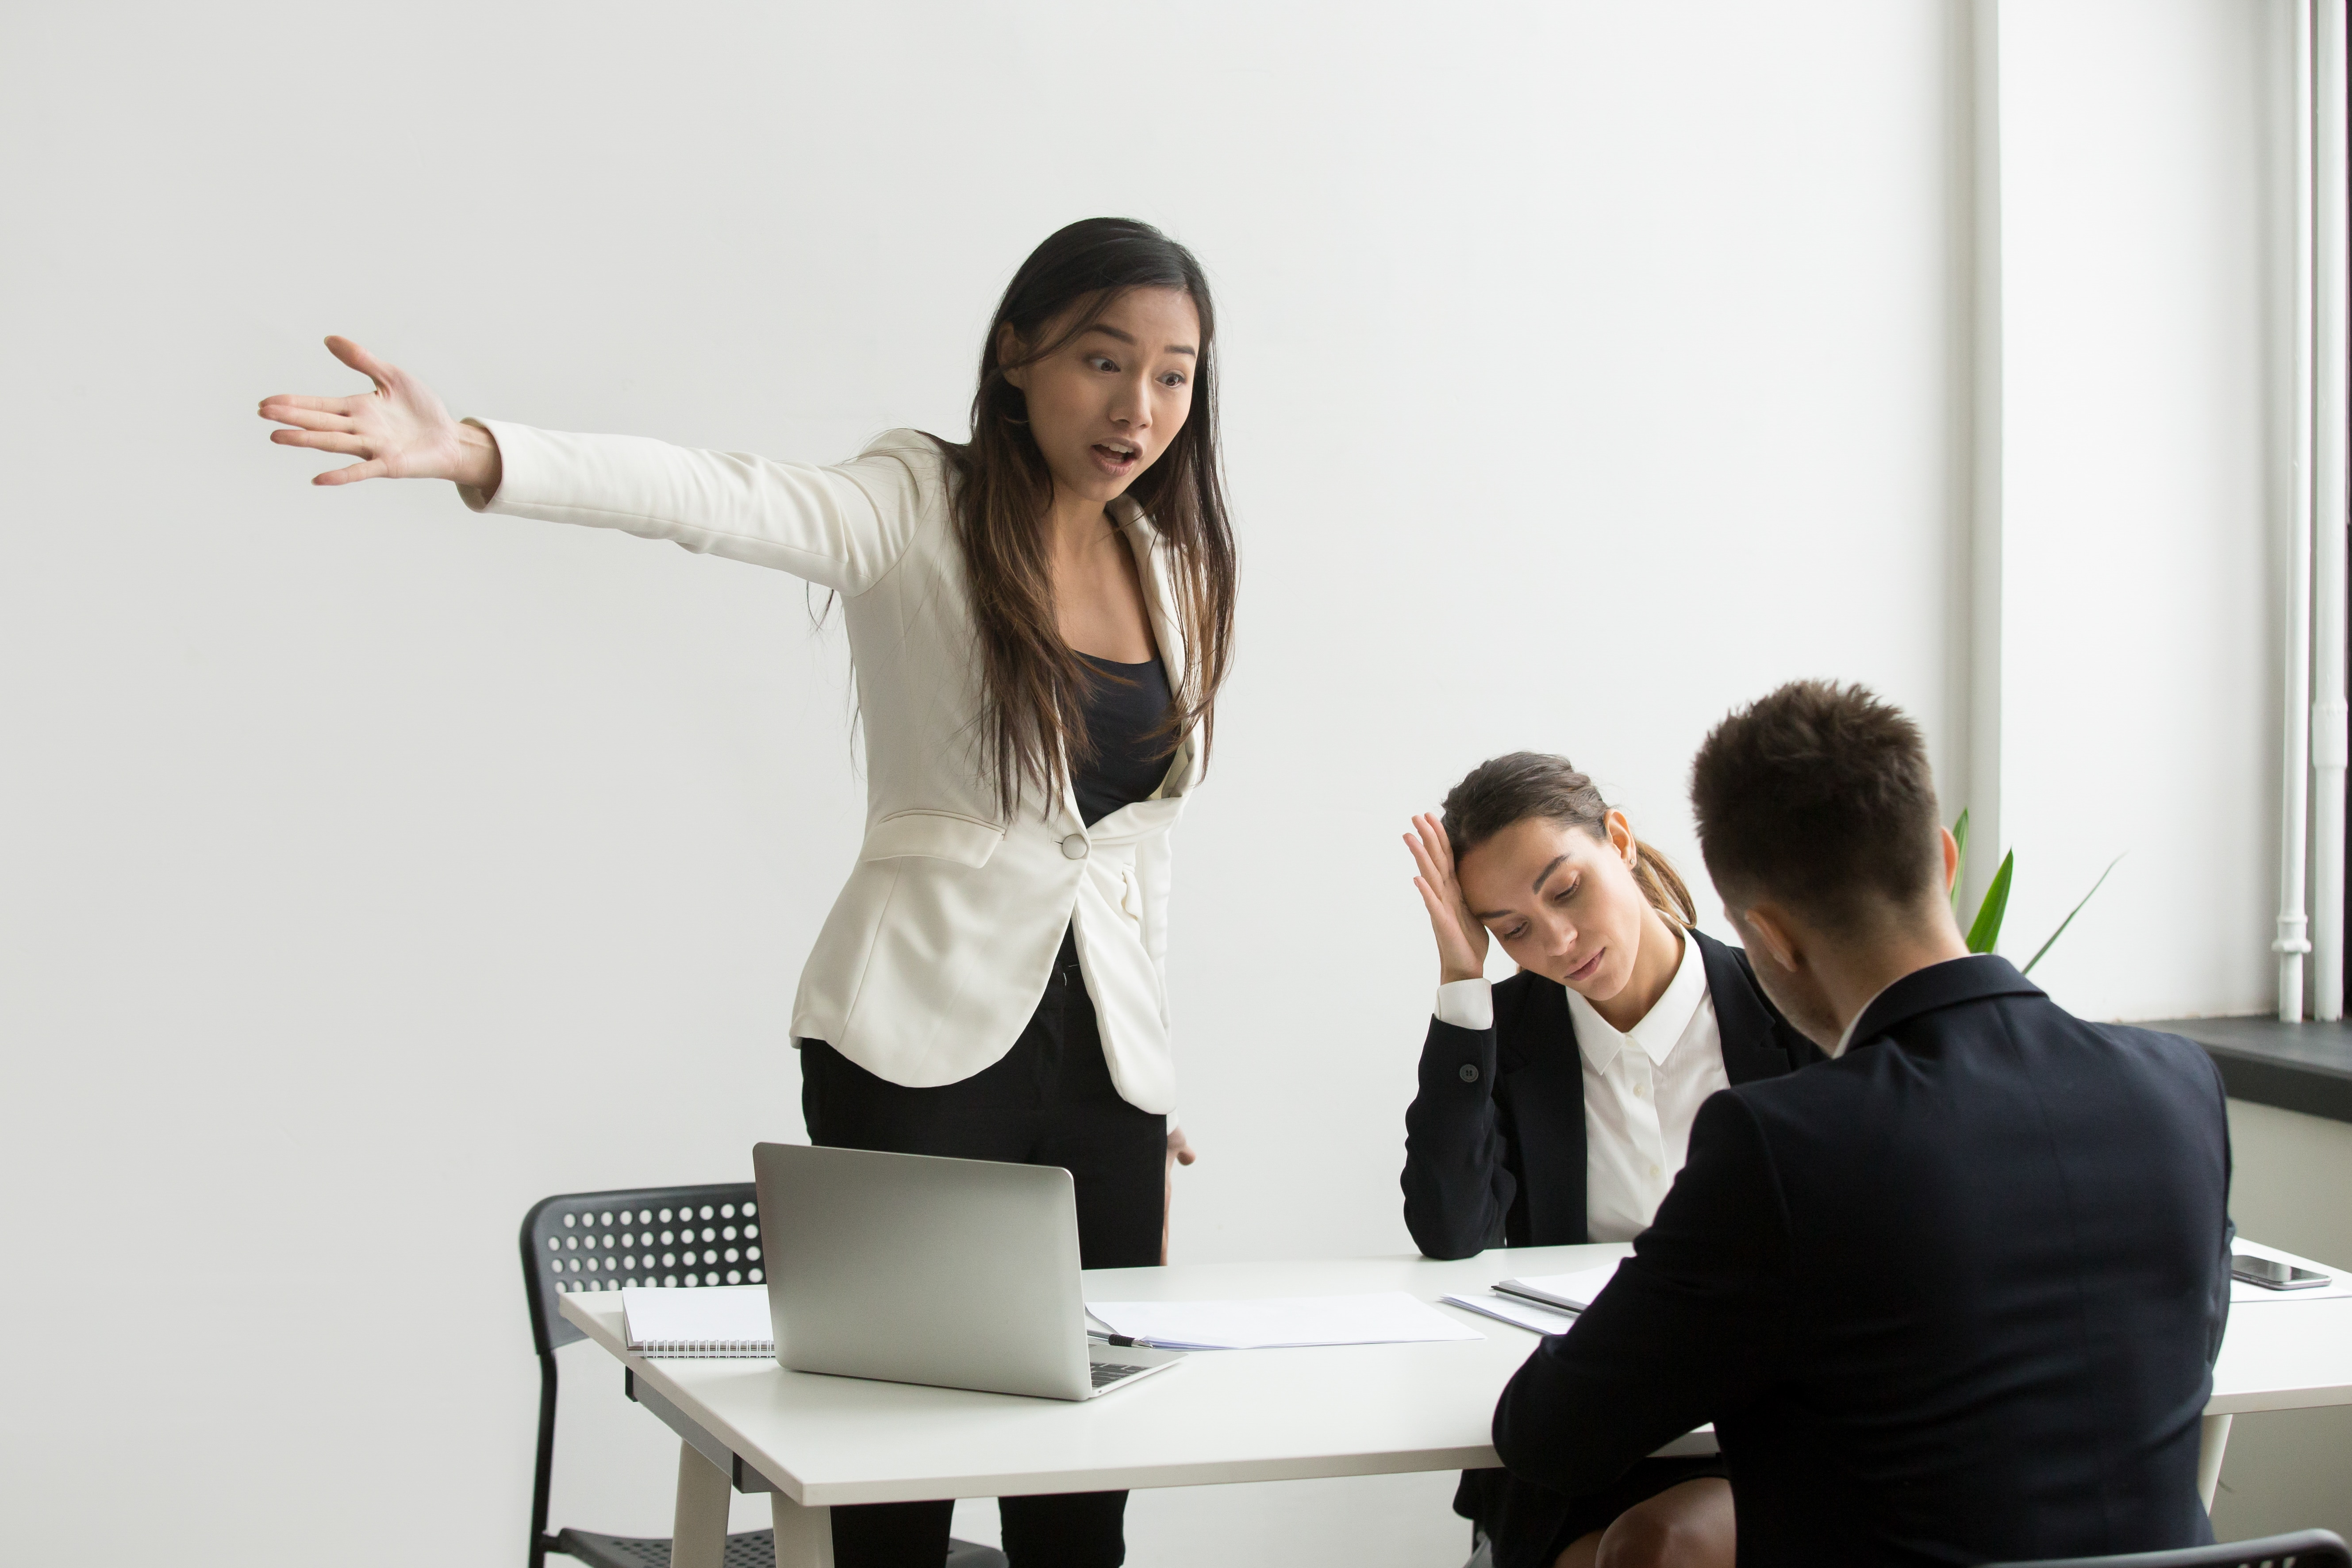 Mad HR representative pointing at door asking candidate to leave